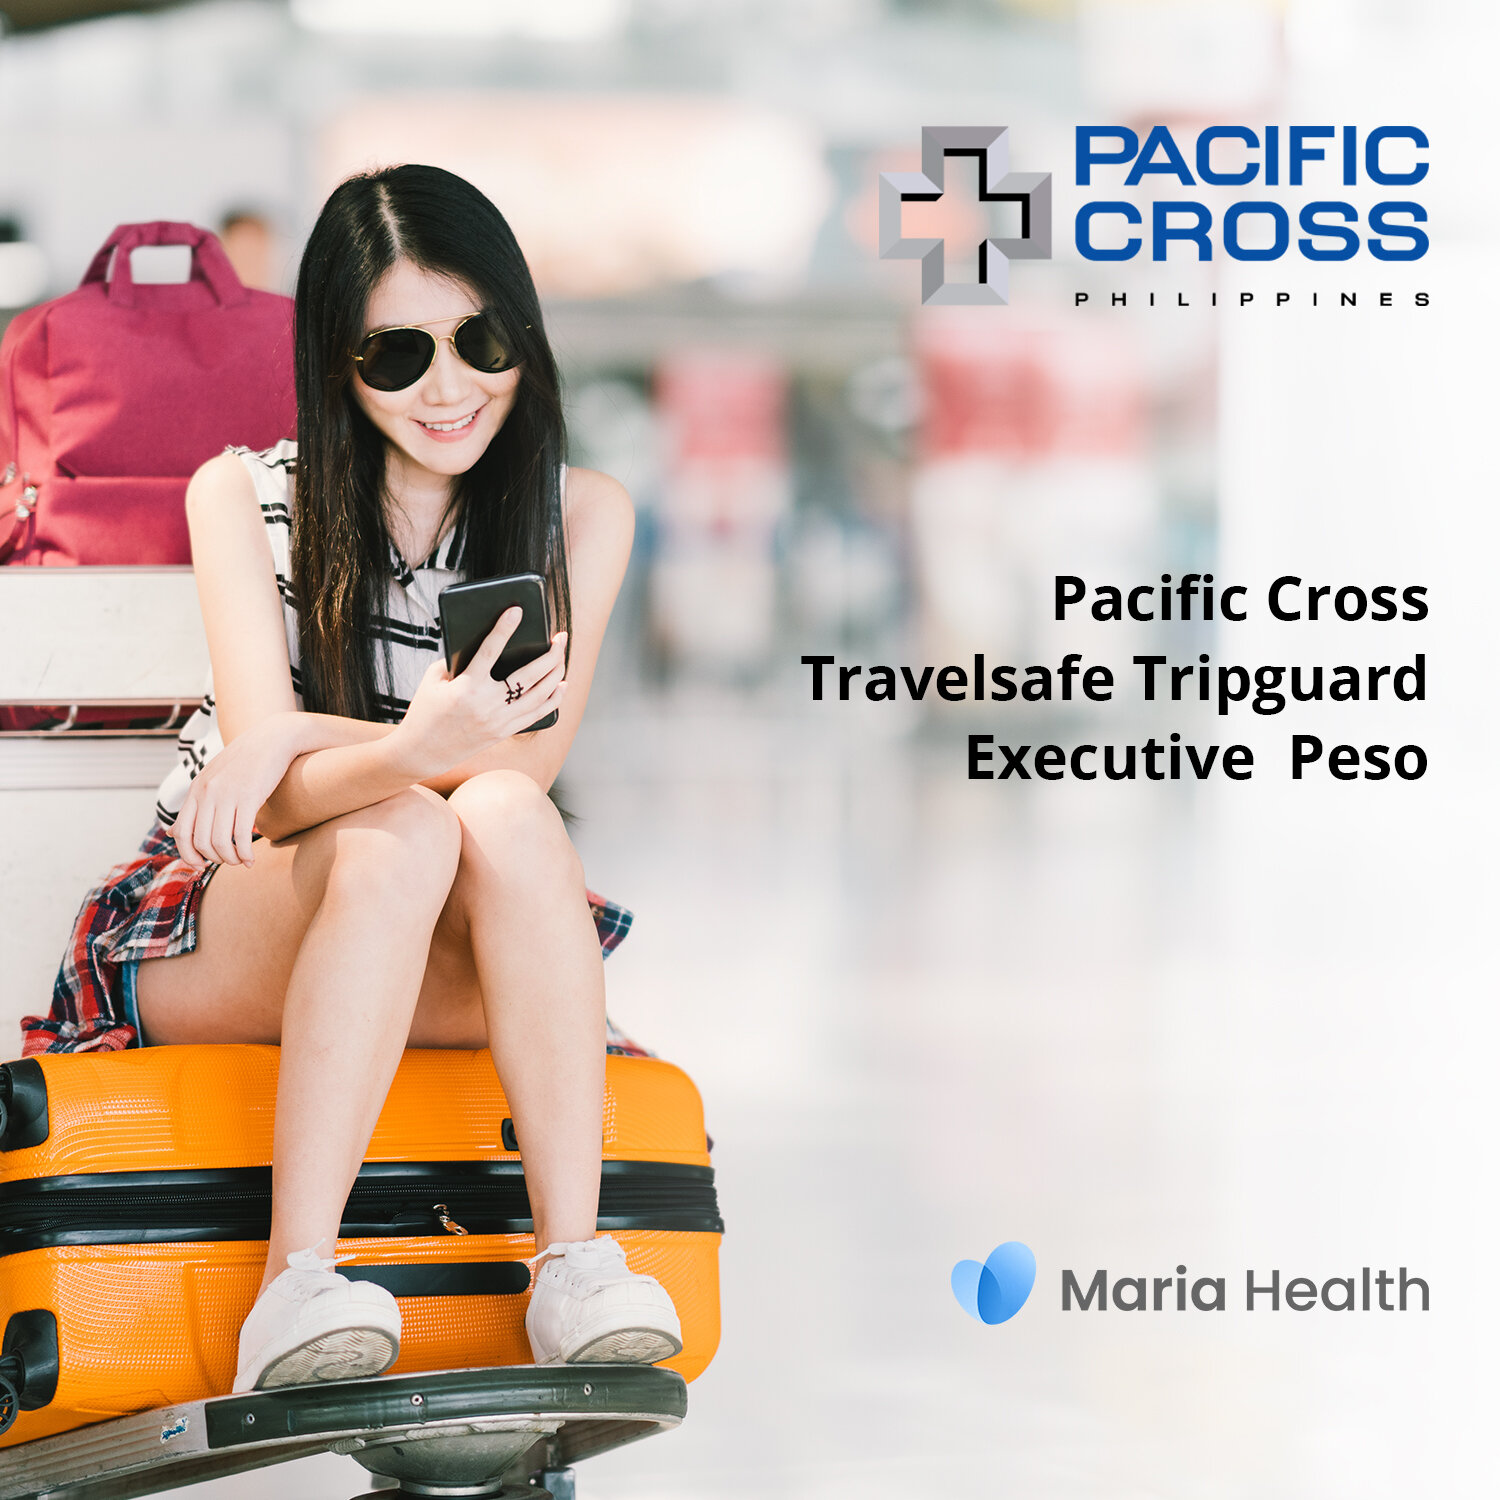 Pacific Cross Travelsafe Tripguard Executive Peso    ₱247 one-time payment   The Travelsafe Tripguard Executive Peso lets you enjoy up to   ₱500,000 of medical treatment with travel inconveniences, and personal accidents when you're travelling.